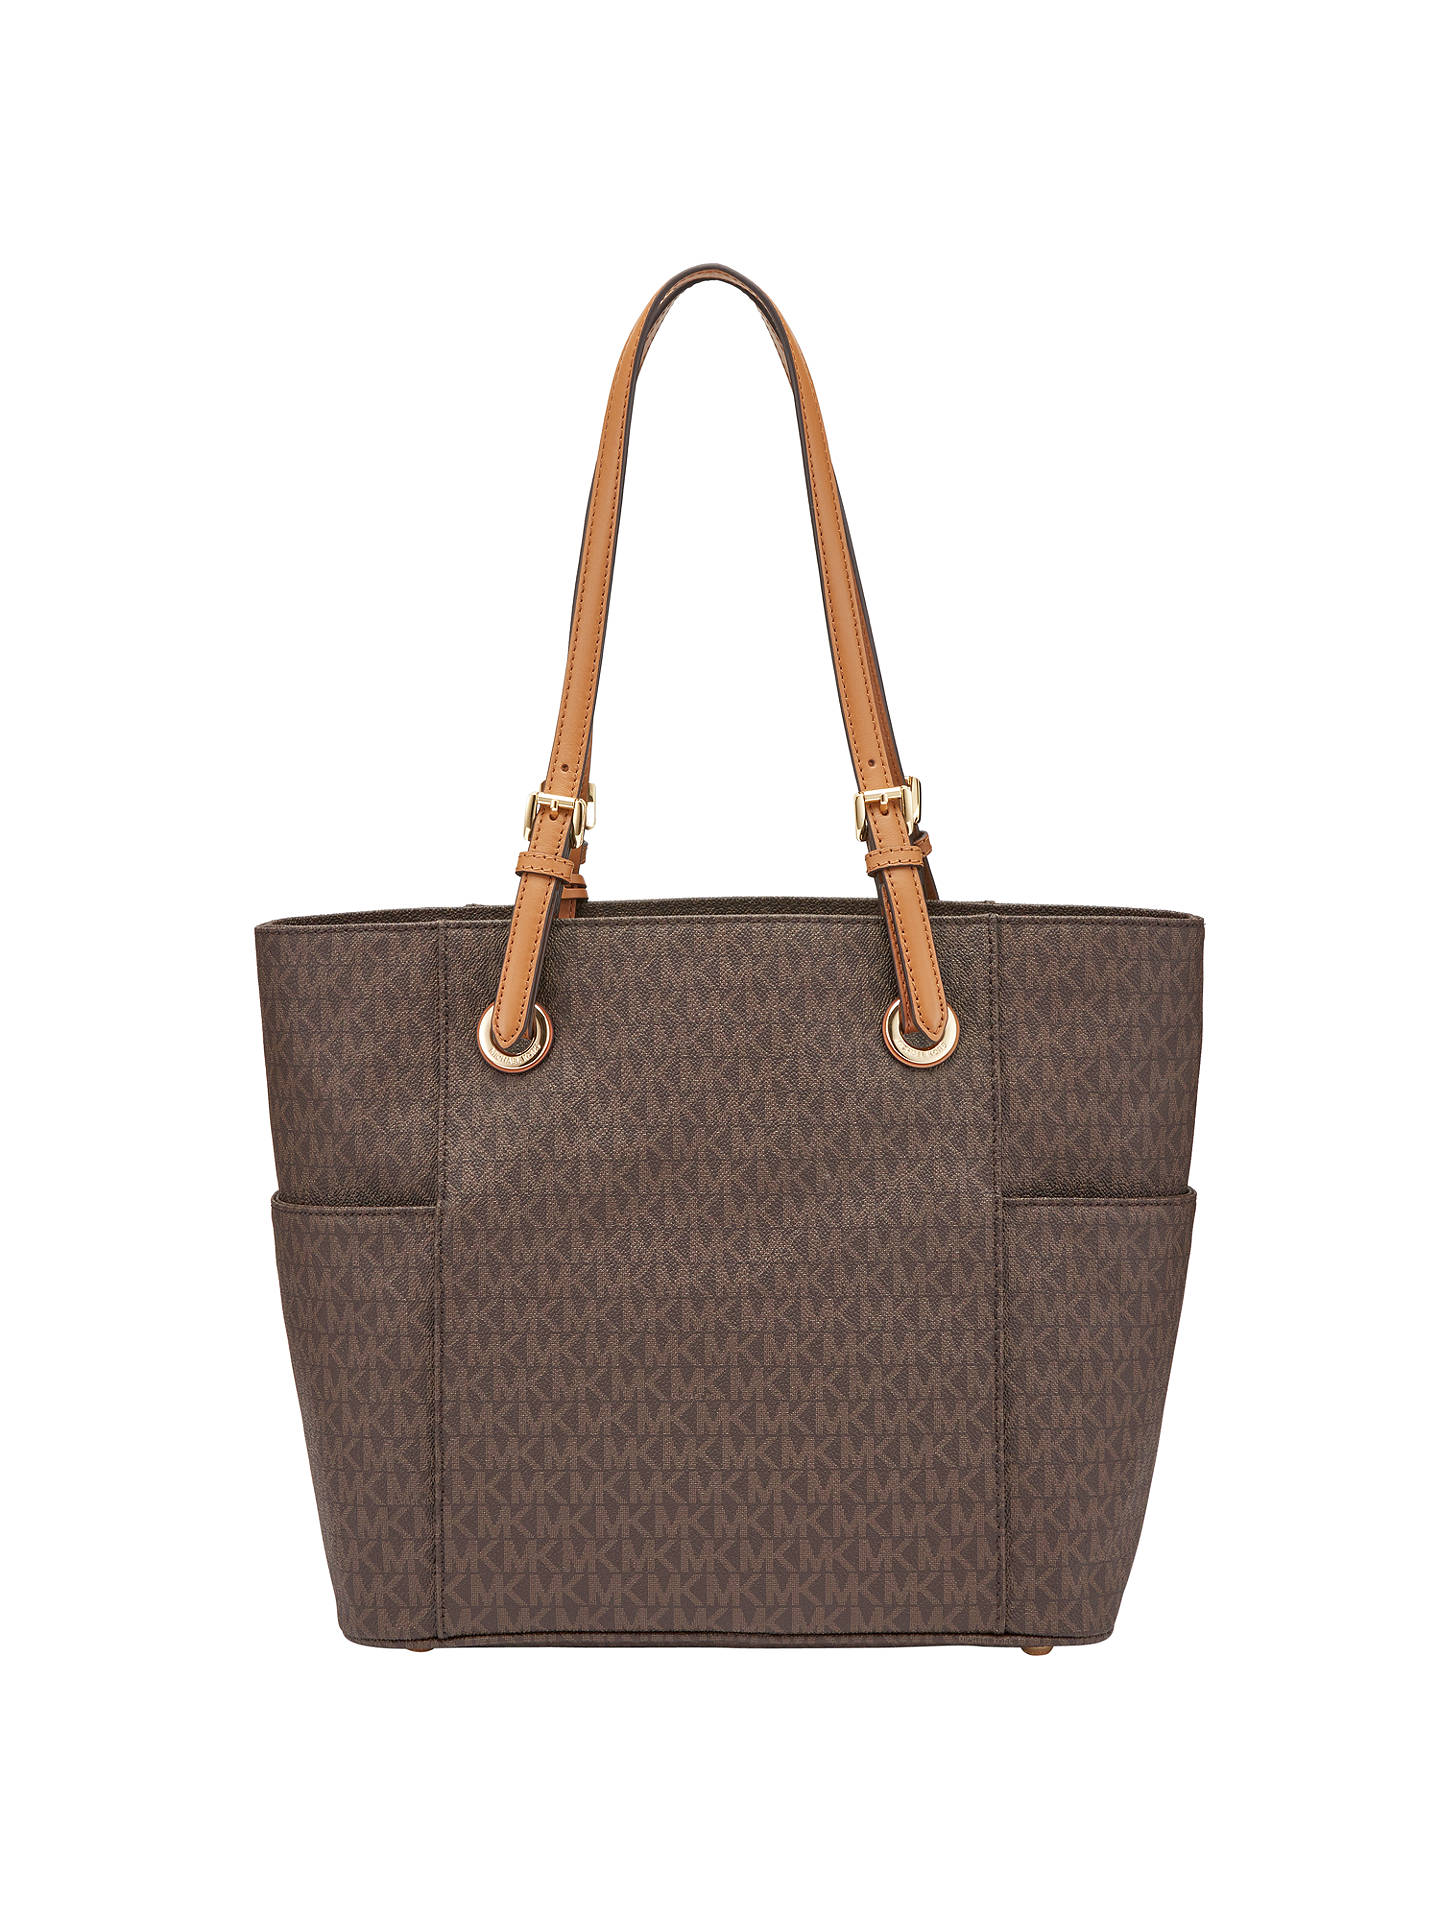 2cadac1bc4d7 ... Buy MICHAEL Michael Kors Jet Set Signature Tote Bag, Brown Online at  johnlewis.com ...